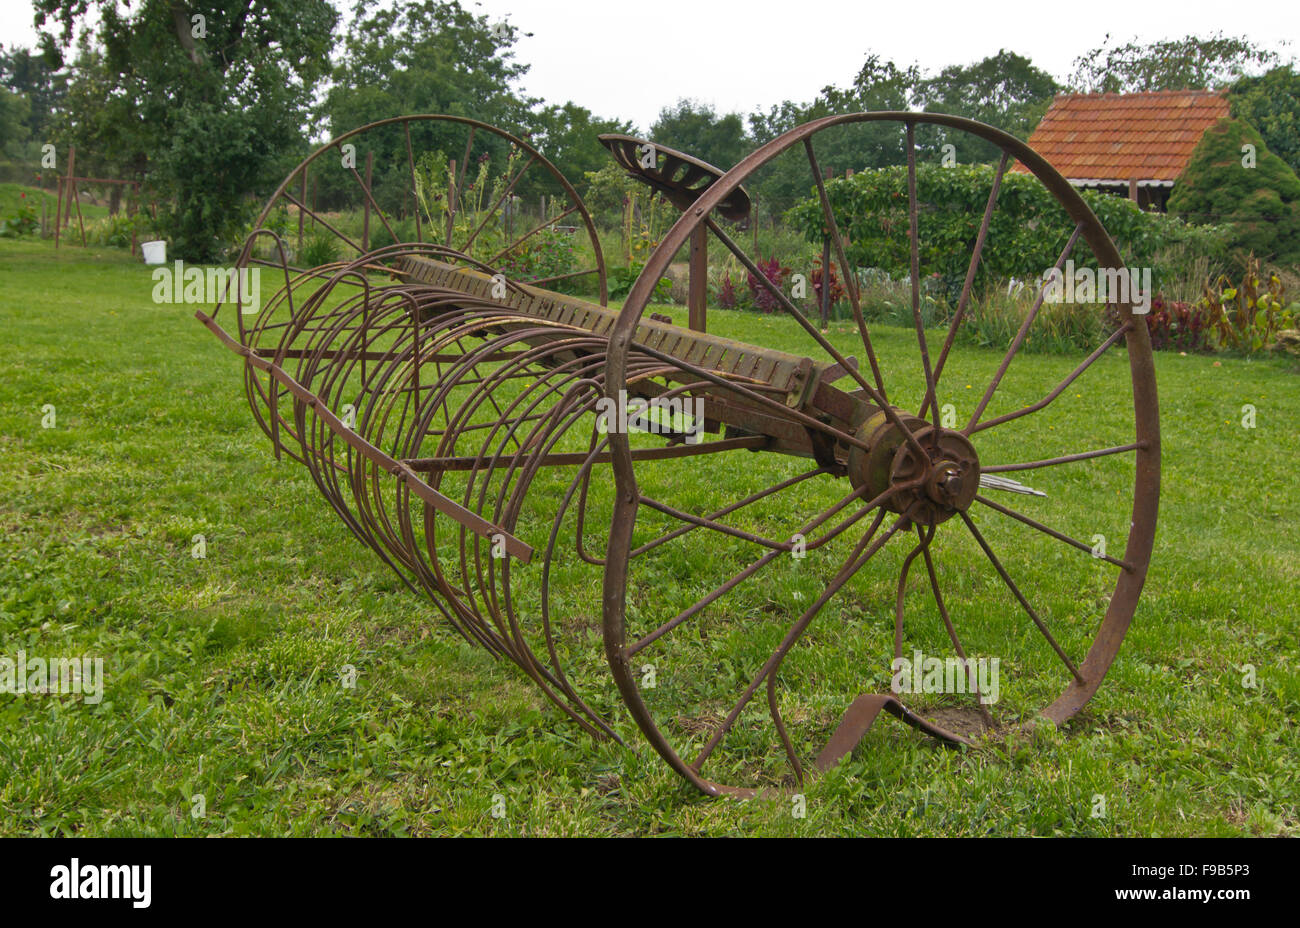 Old seeding machine - Stock Image